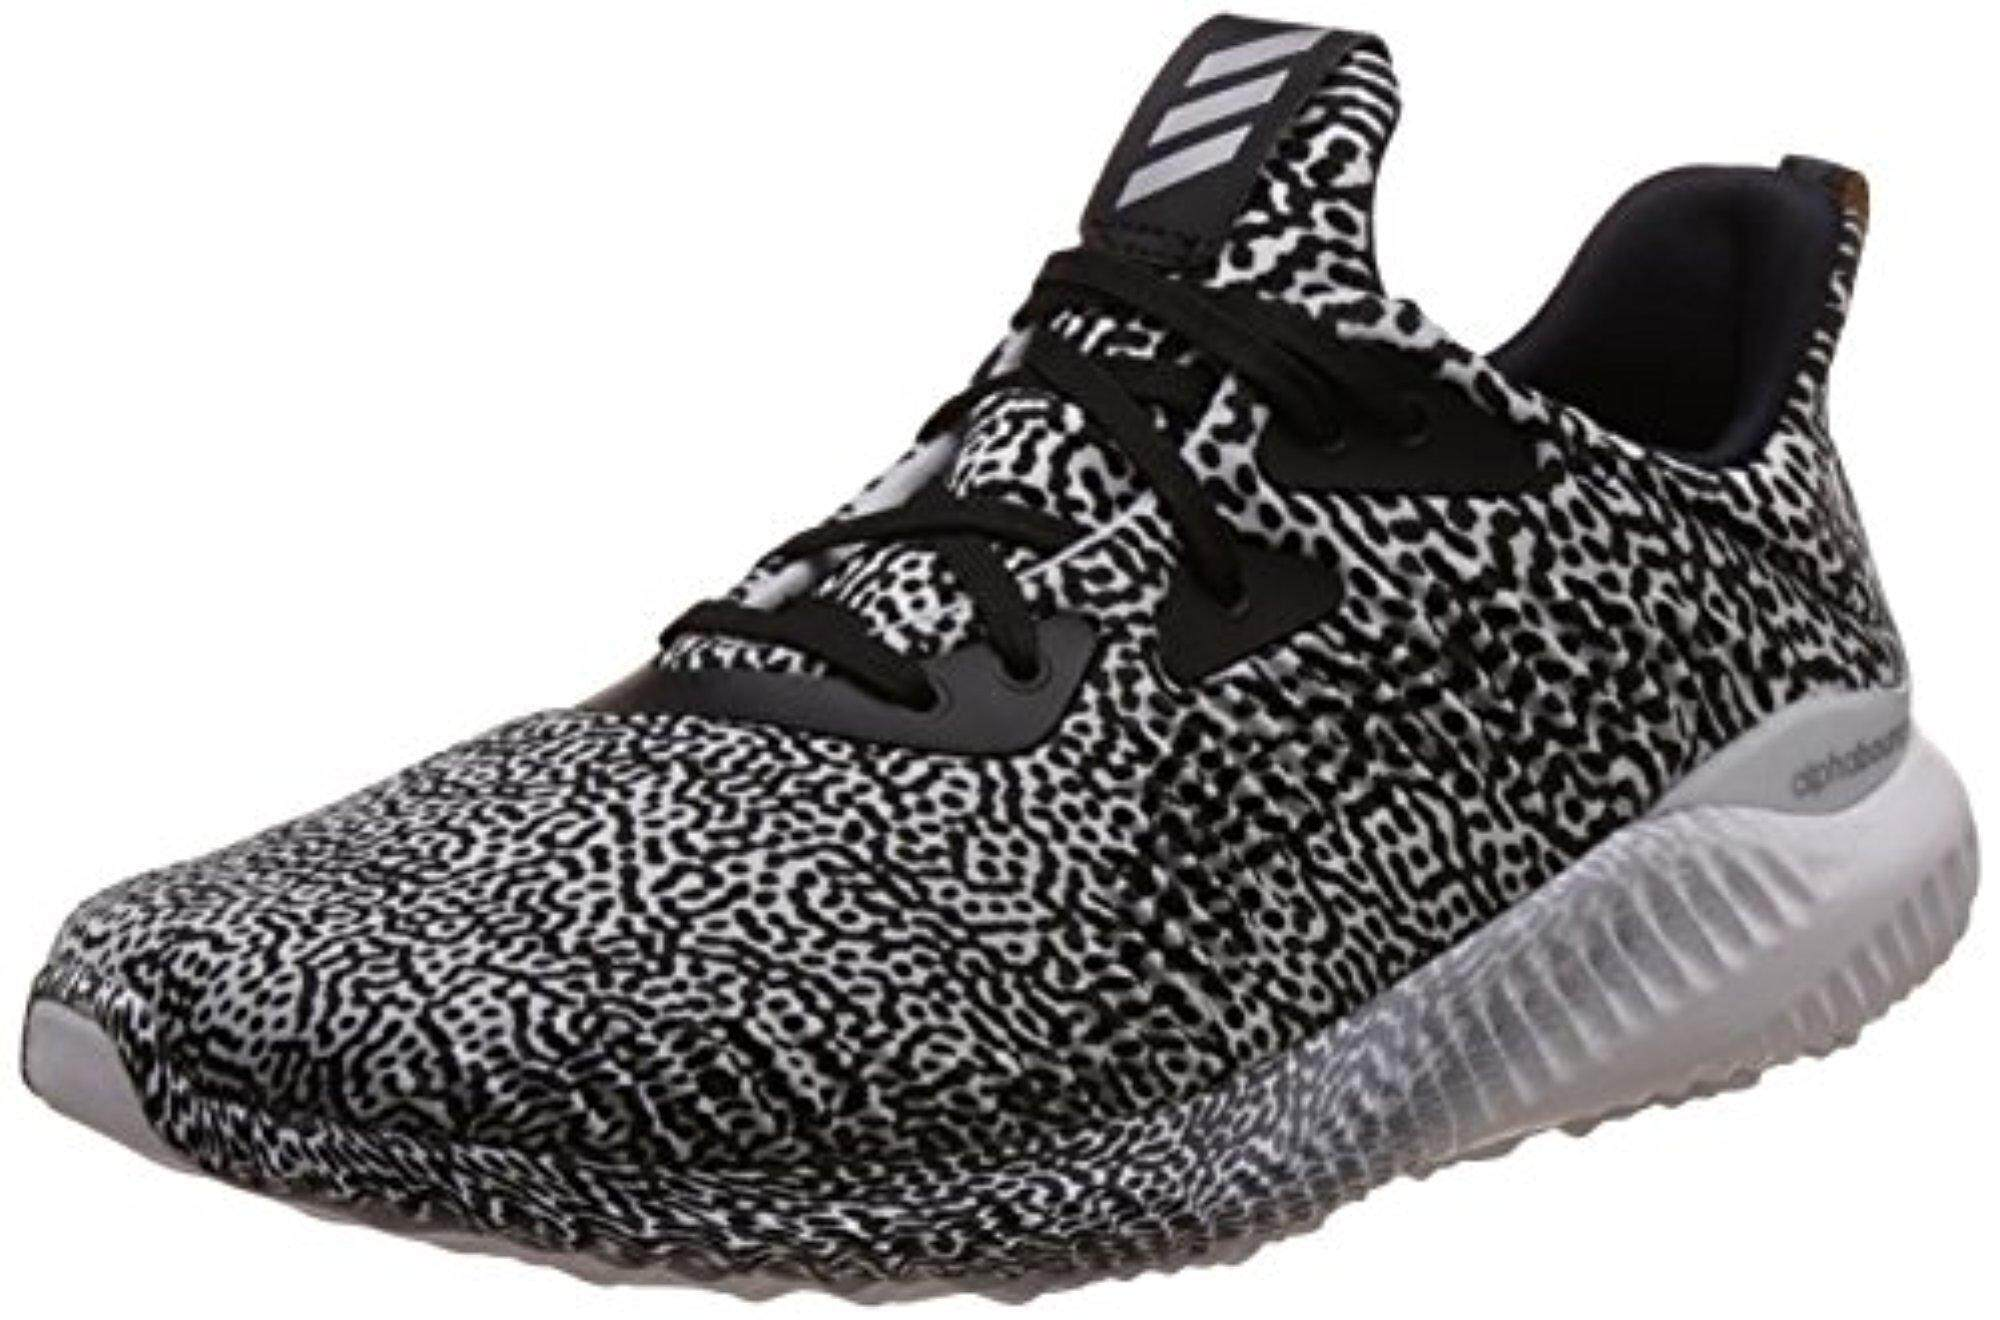 on sale c4d62 dd6b9 adidas Women s Alphabounce W Aramis Cblack, Ftwwht and Clgrey Running Shoes  - 6 UK